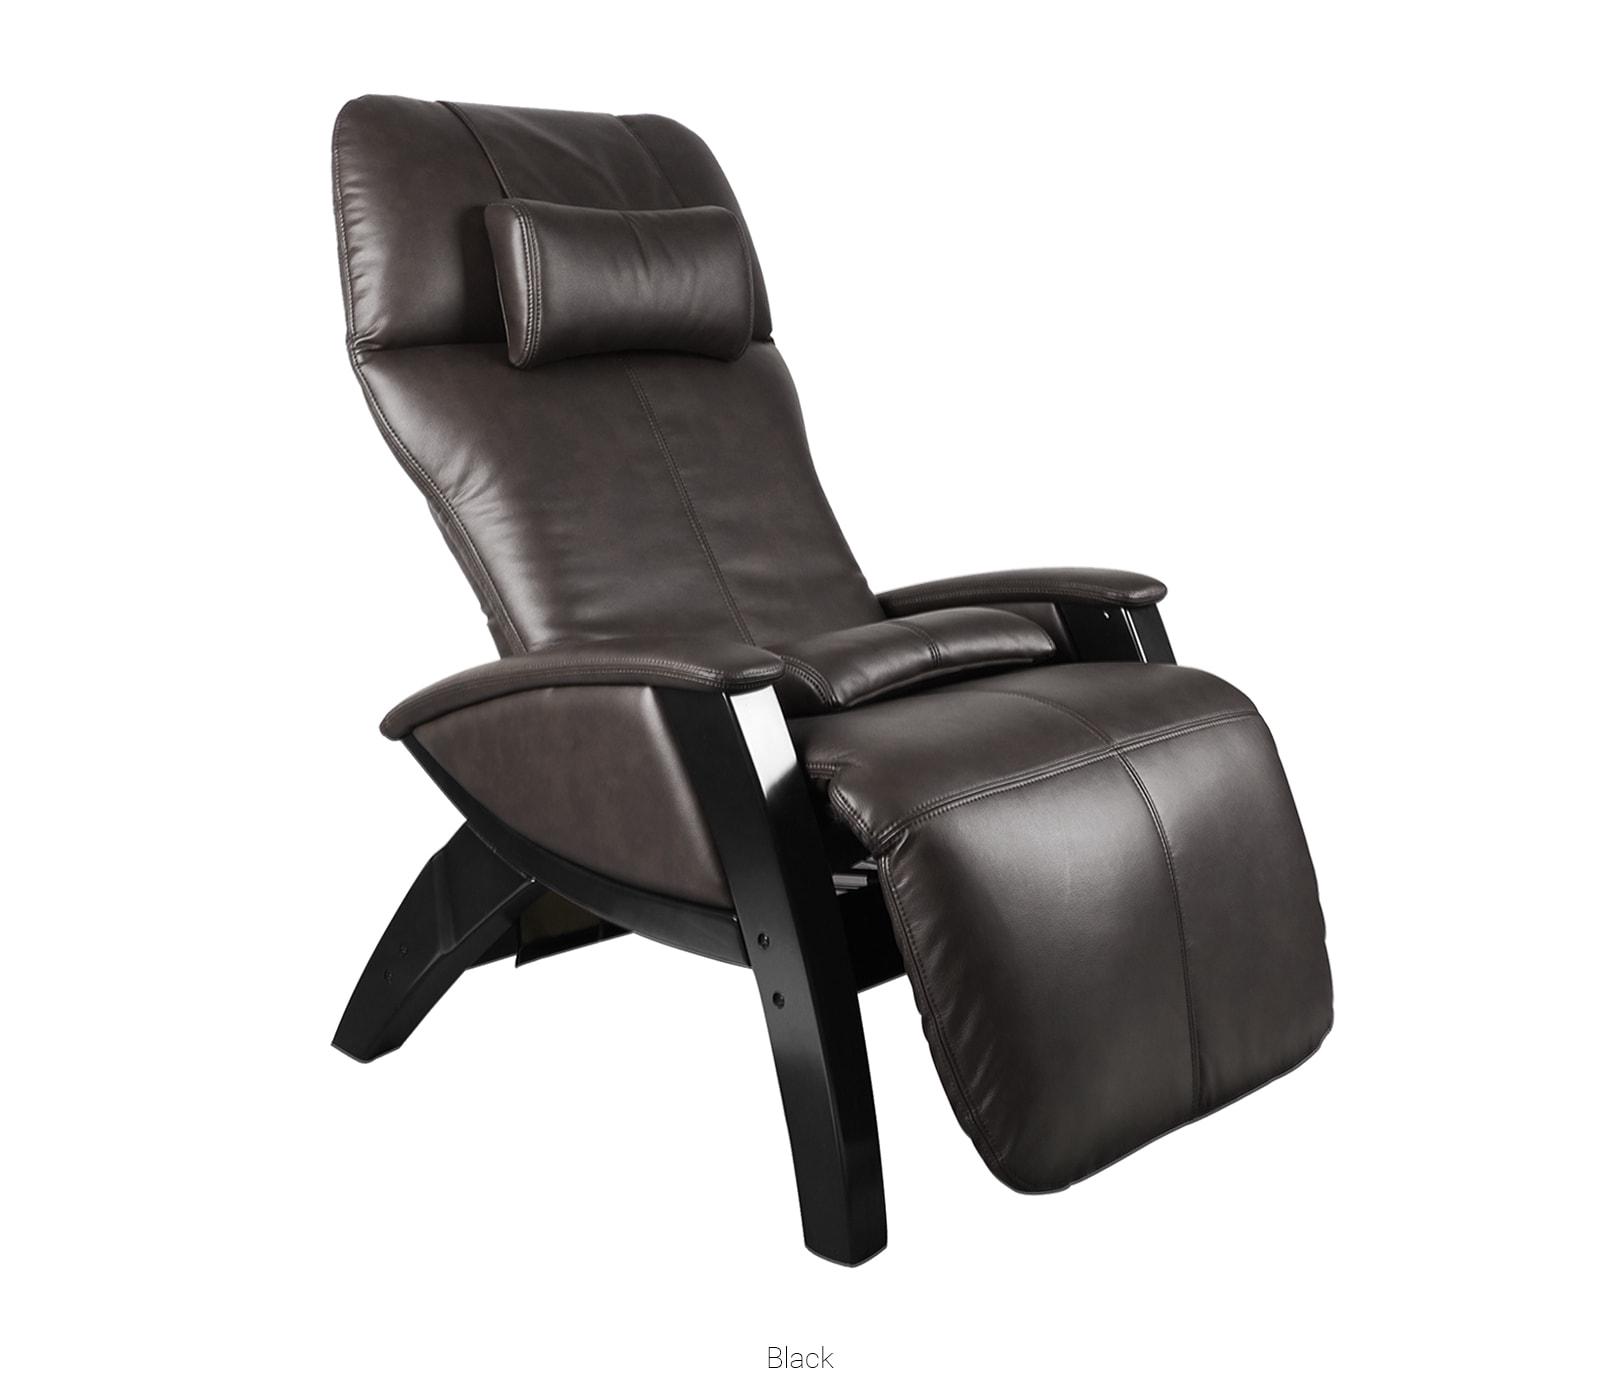 Cozzia Massage Chairs New Cozzia Dual Power Zg Zero Gravity Recliner Electric